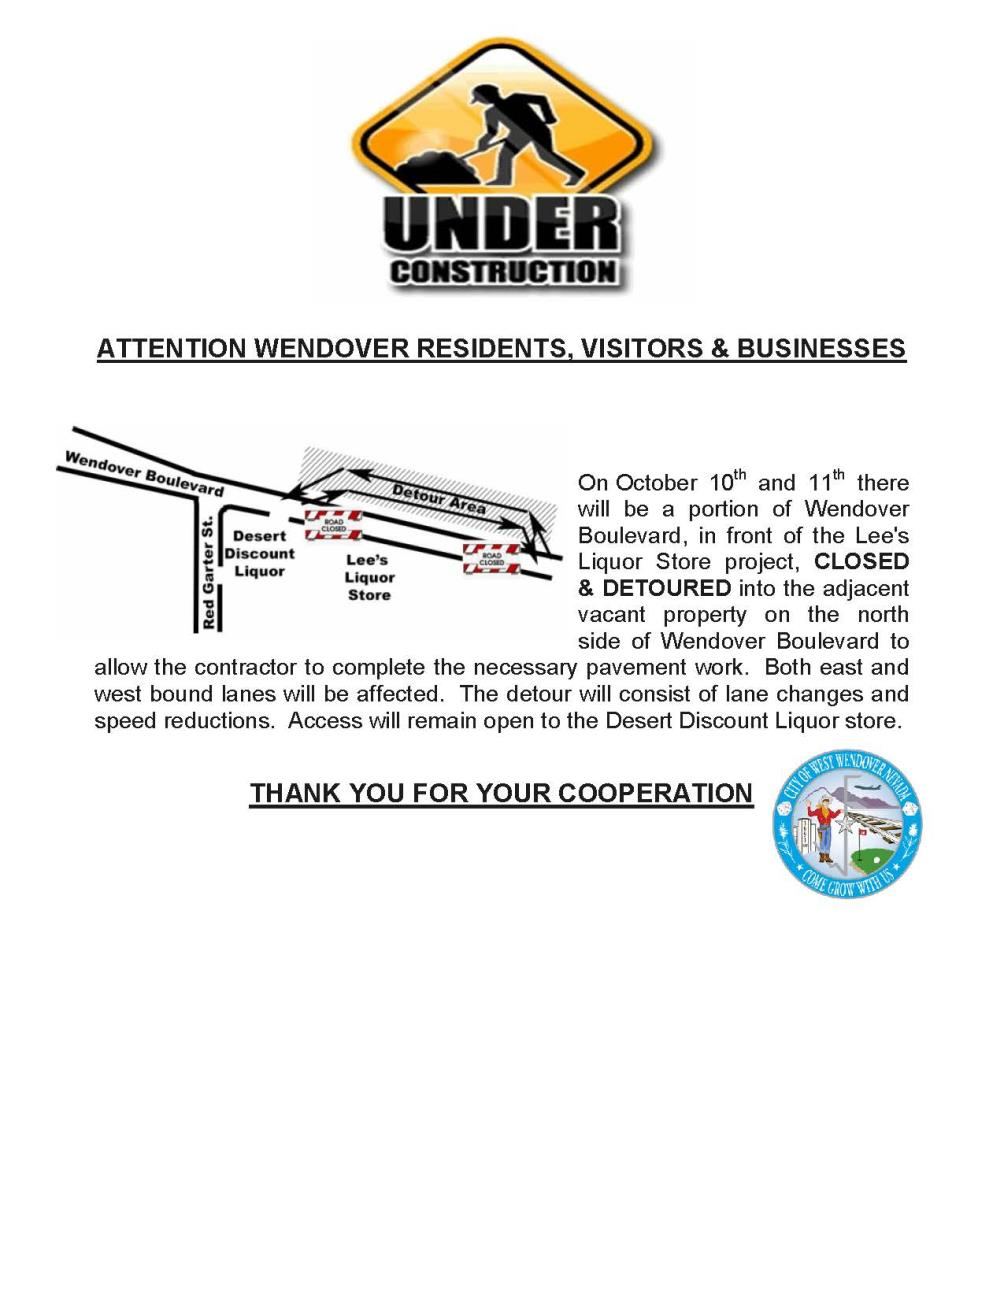 Road Closure-Detour Wendover Blvd 10-2017